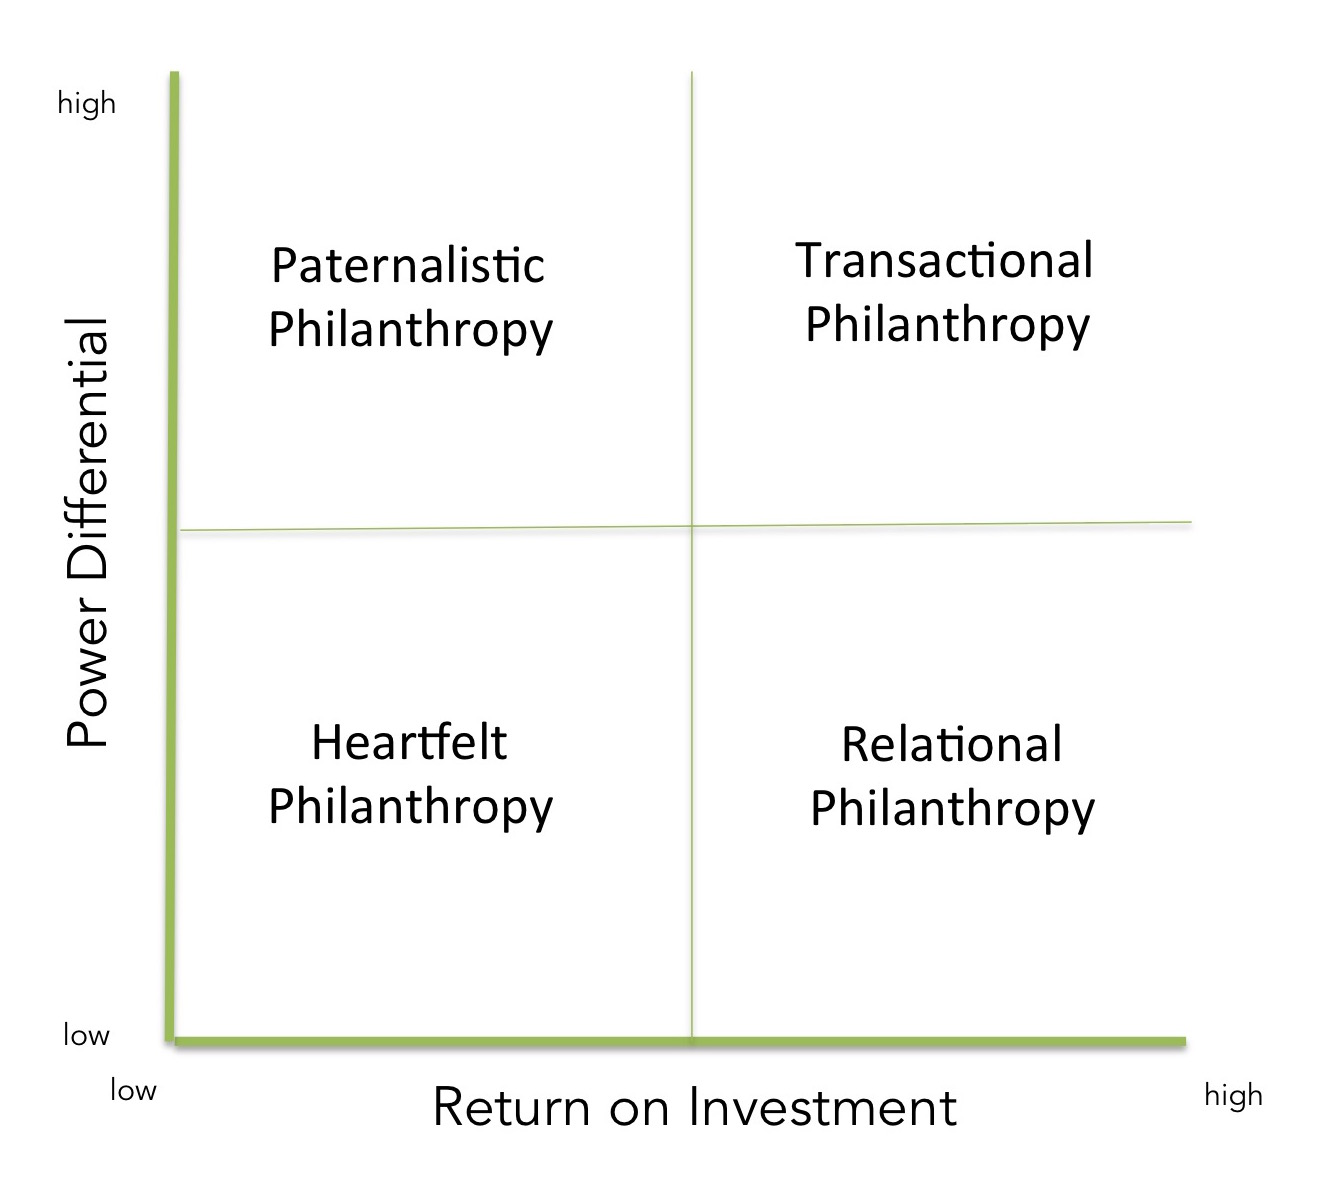 a relational approach to philanthropy • facilitation & process